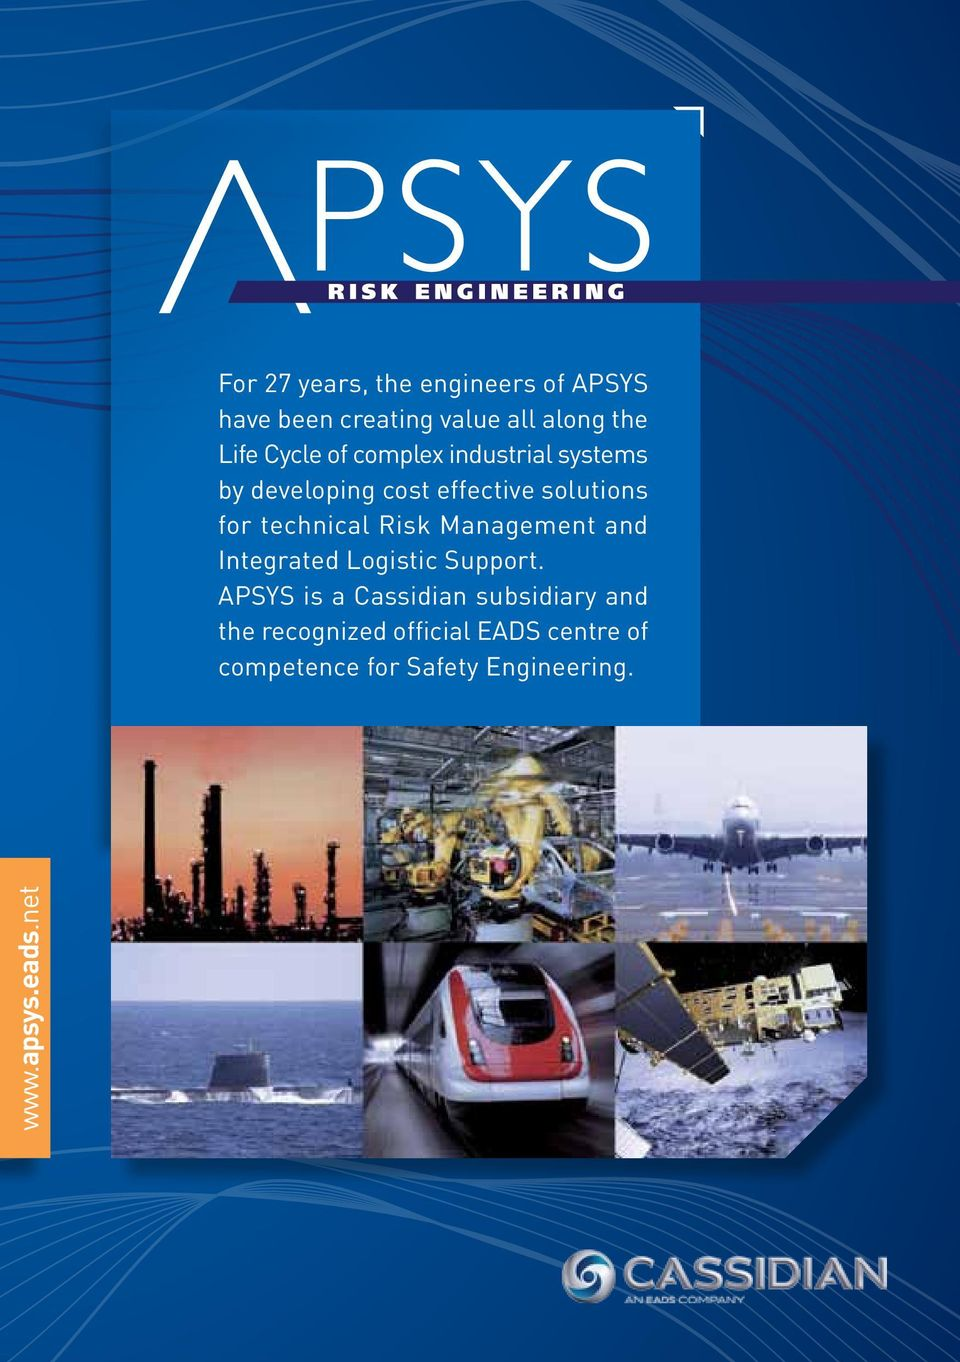 APSYS is a Cassidian subsidiary and the recognized official EADS centre of competence for Safety Engineering.